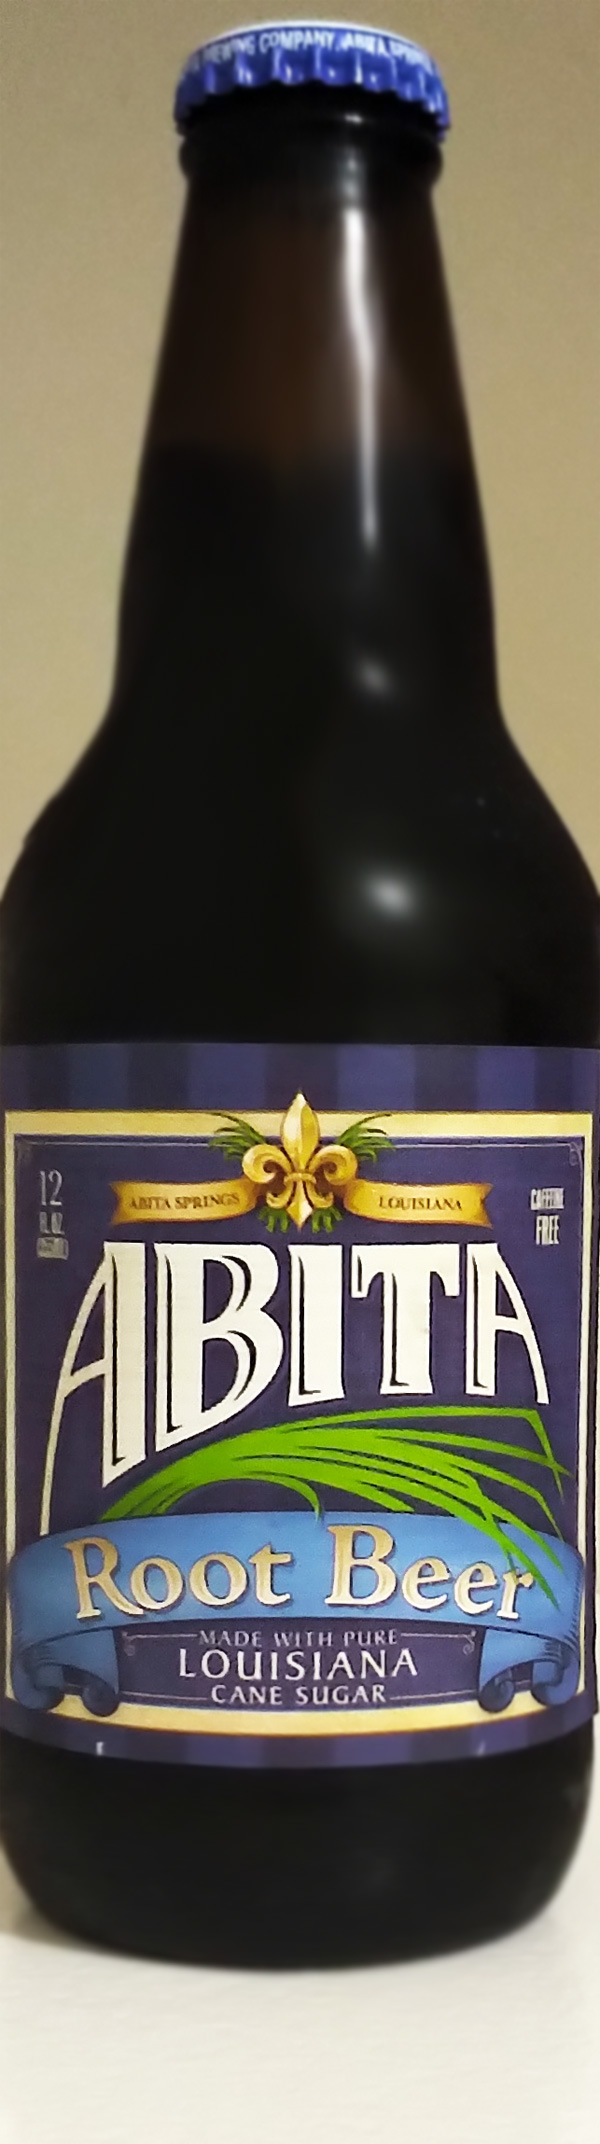 Abita! Louisiana Root Beer